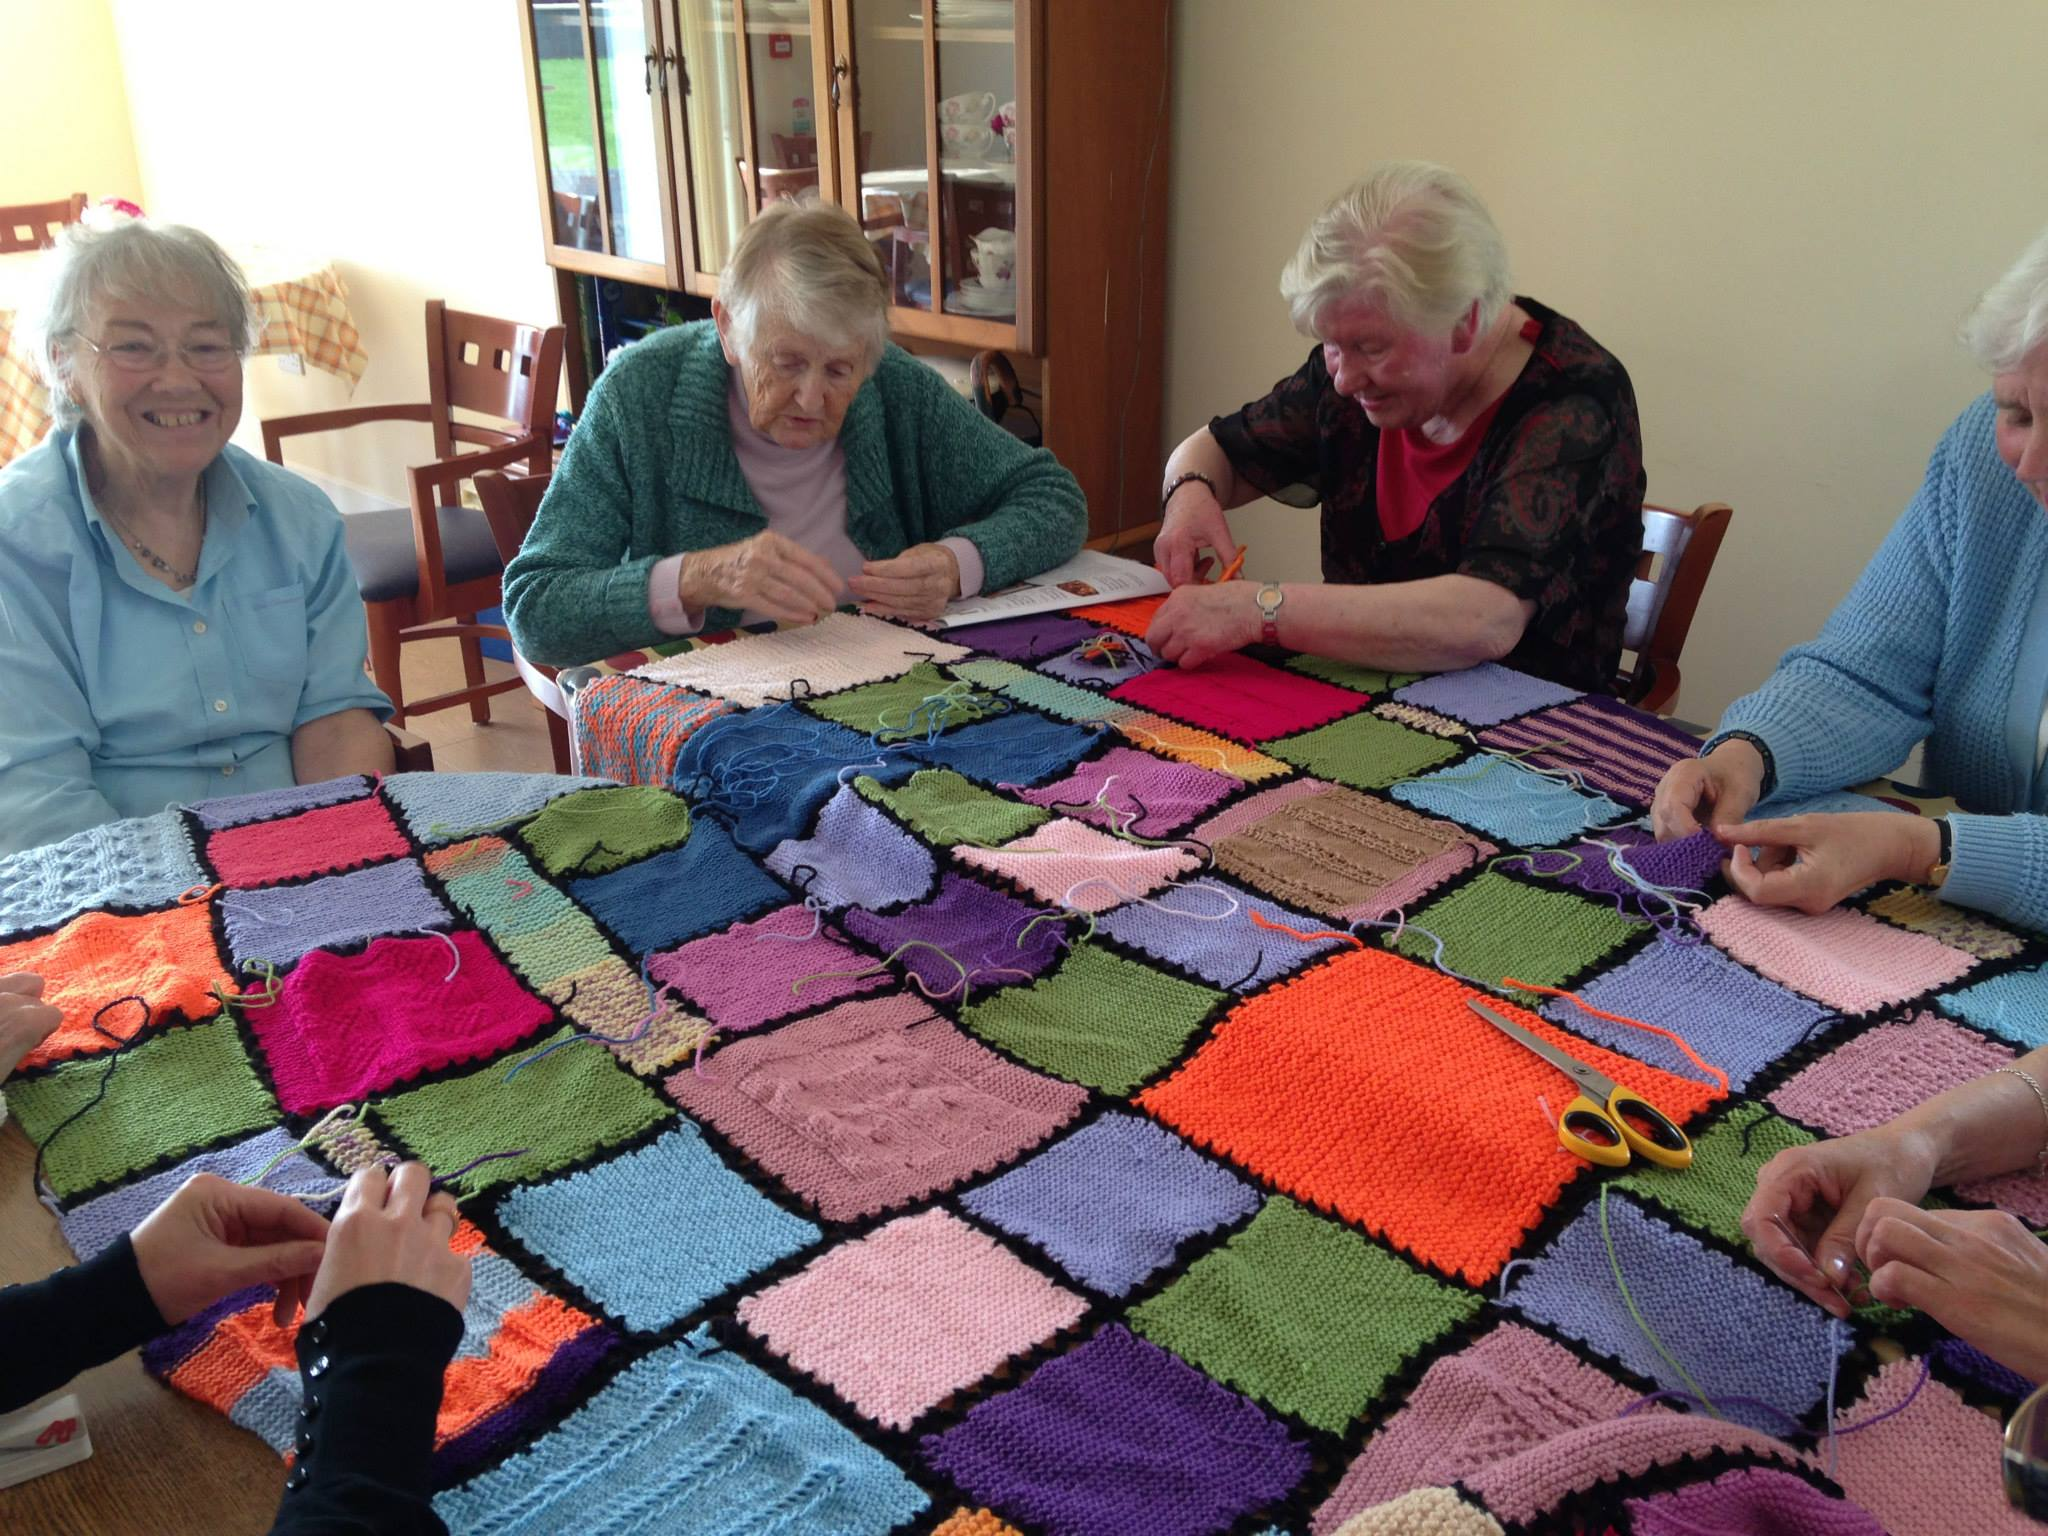 Some of the clients busy knitting a patchwork quilt to raffle at the Christmas raffle.